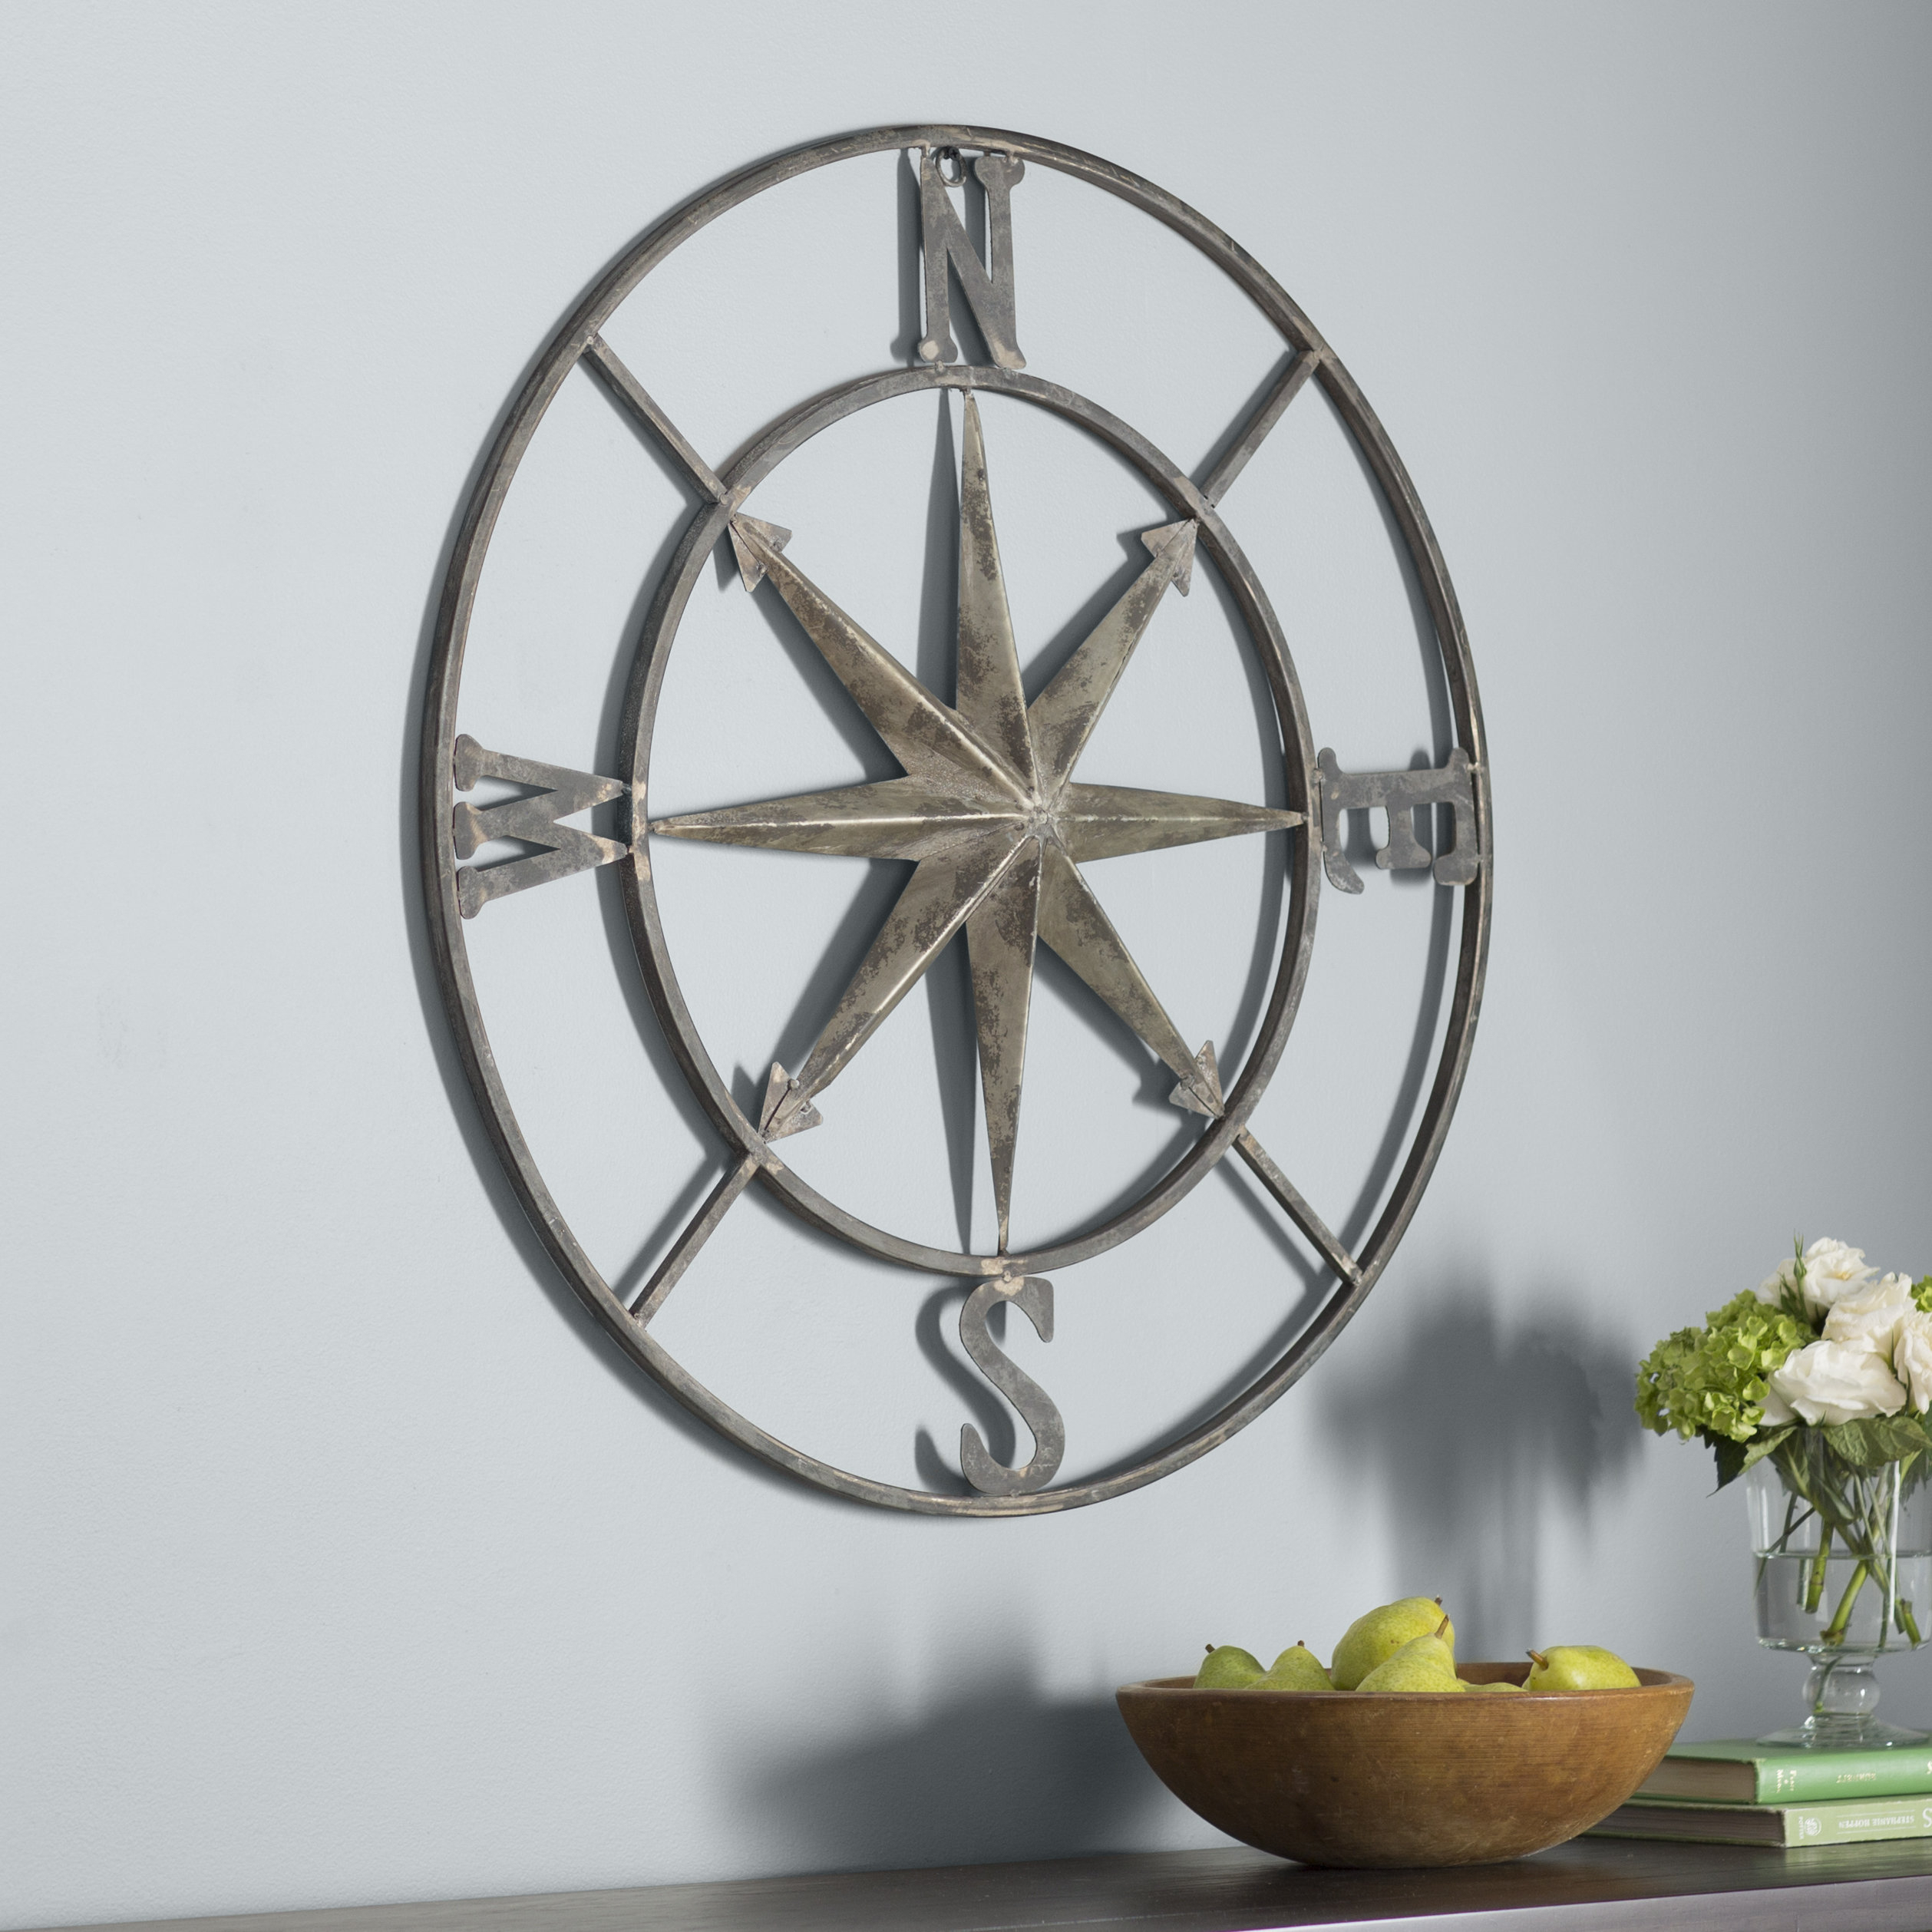 Tribal Wall Decor | Wayfair With Vase And Bowl Wall Decor By Alcott Hill (View 24 of 30)